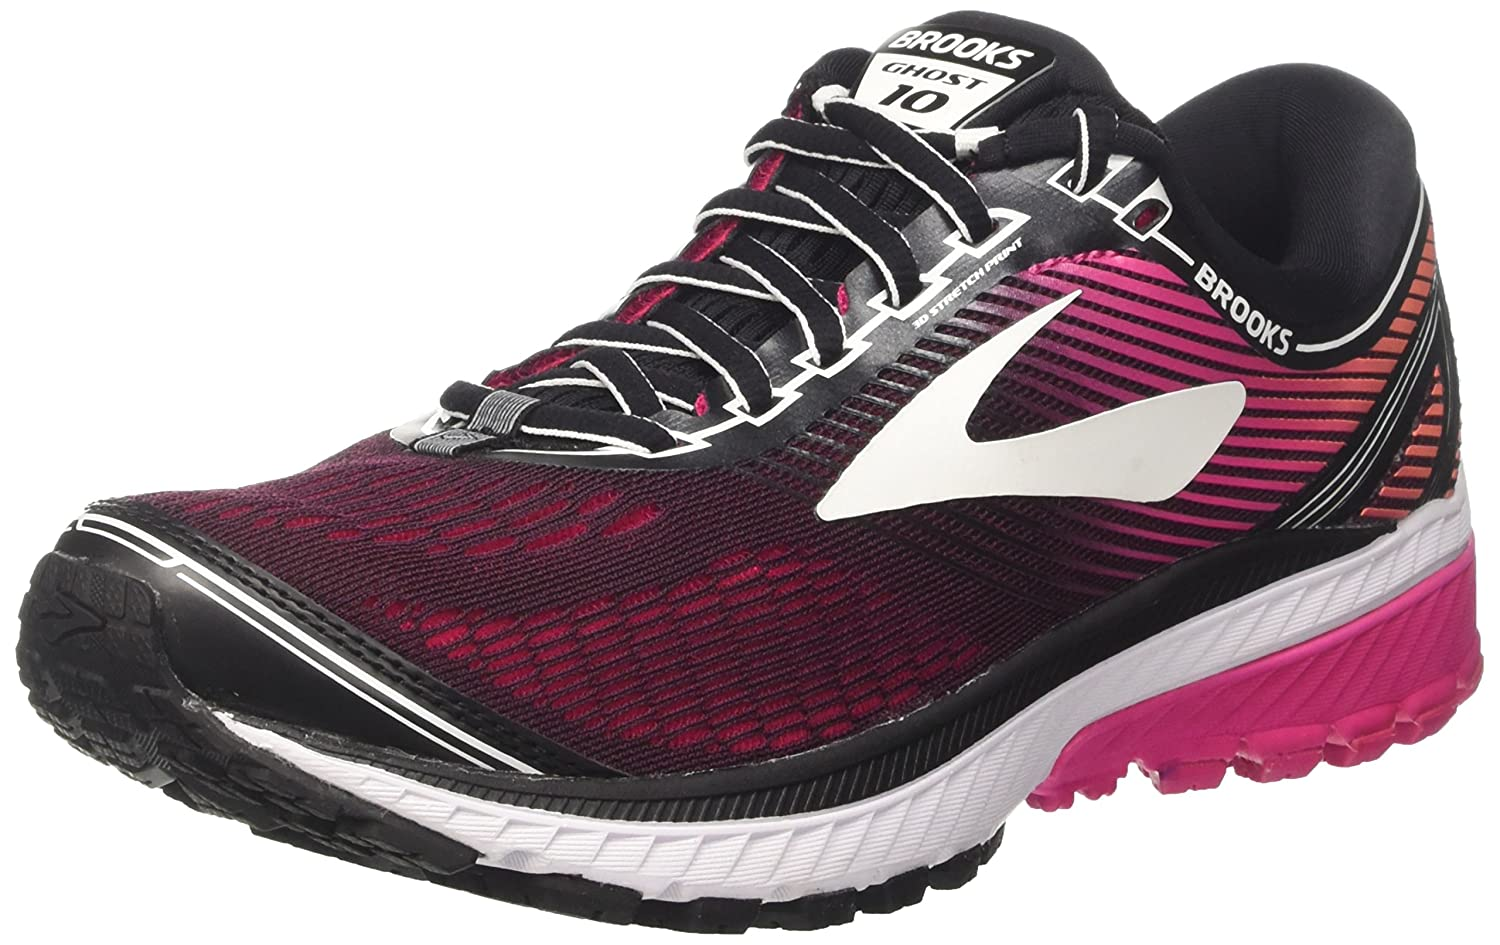 Brooks Women's Ghost 10 Running Shoe B01MTL1OFR 5.5 B(M) US|Black/Pink Peacock/Living Coral